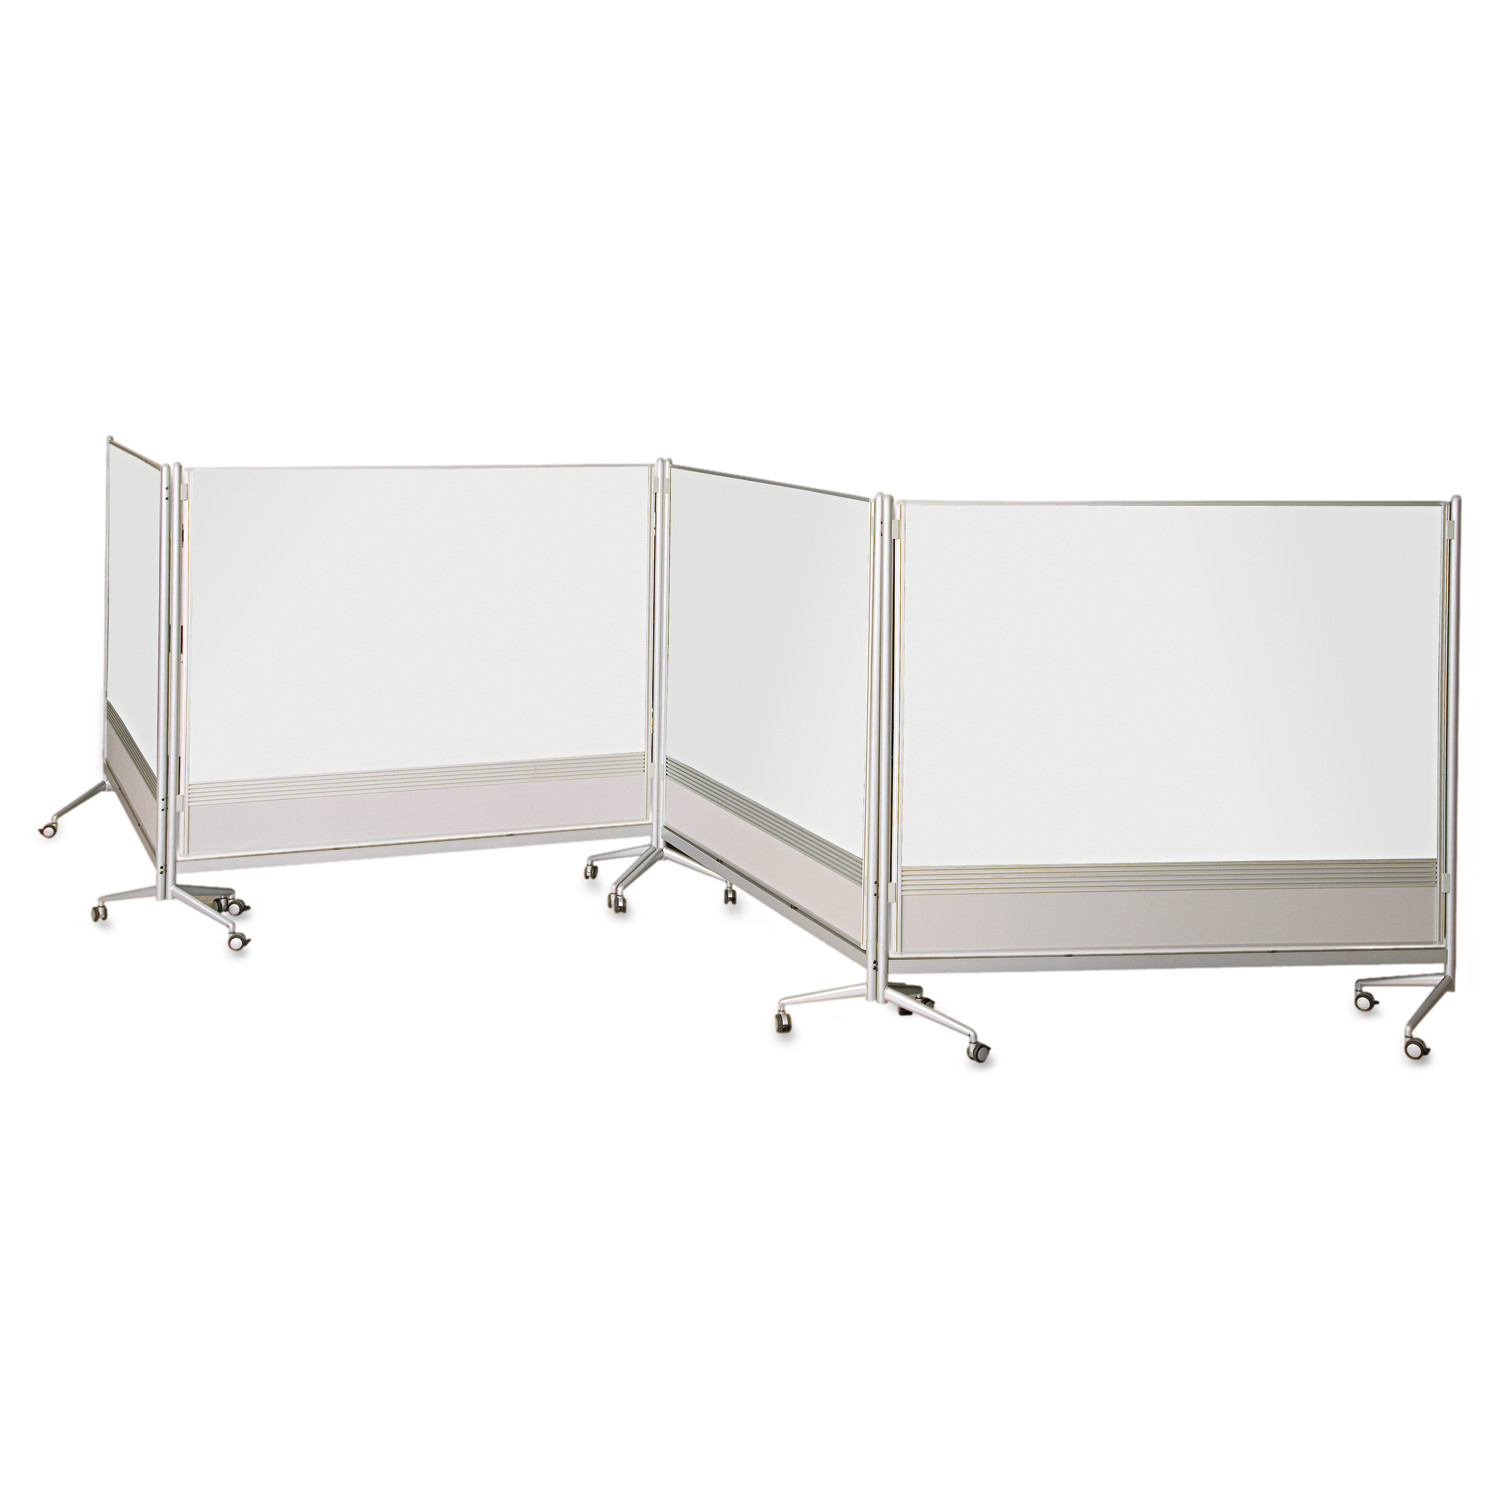 Best-Rite D.O.C. Mobile Double-Sided Marker Board Divider, 72 x 72, Silver by BALT INC.